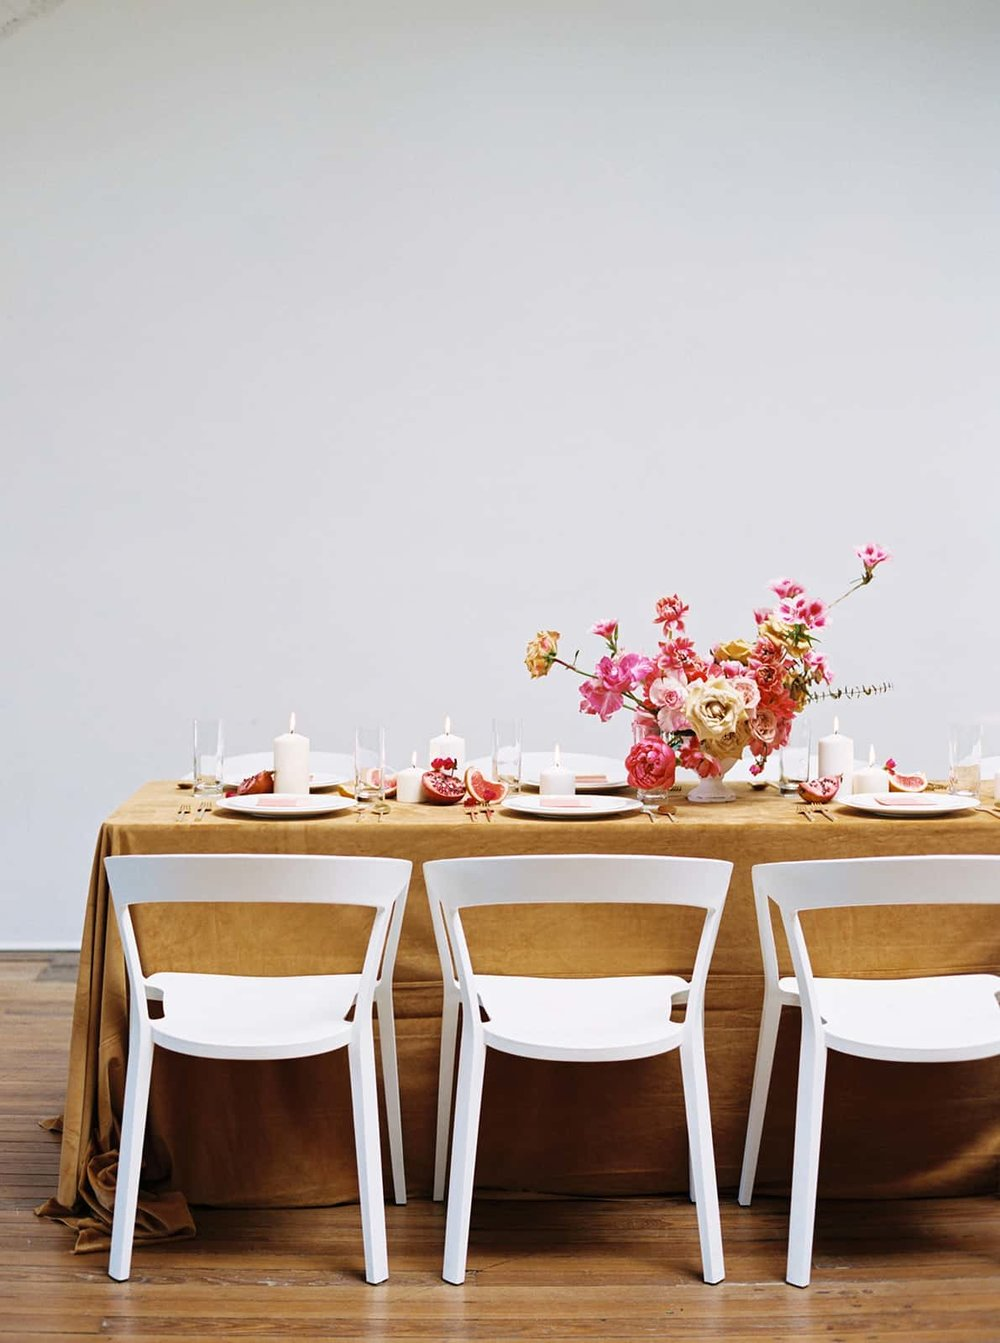 Wedding styling and floral design by Color Theory Collective